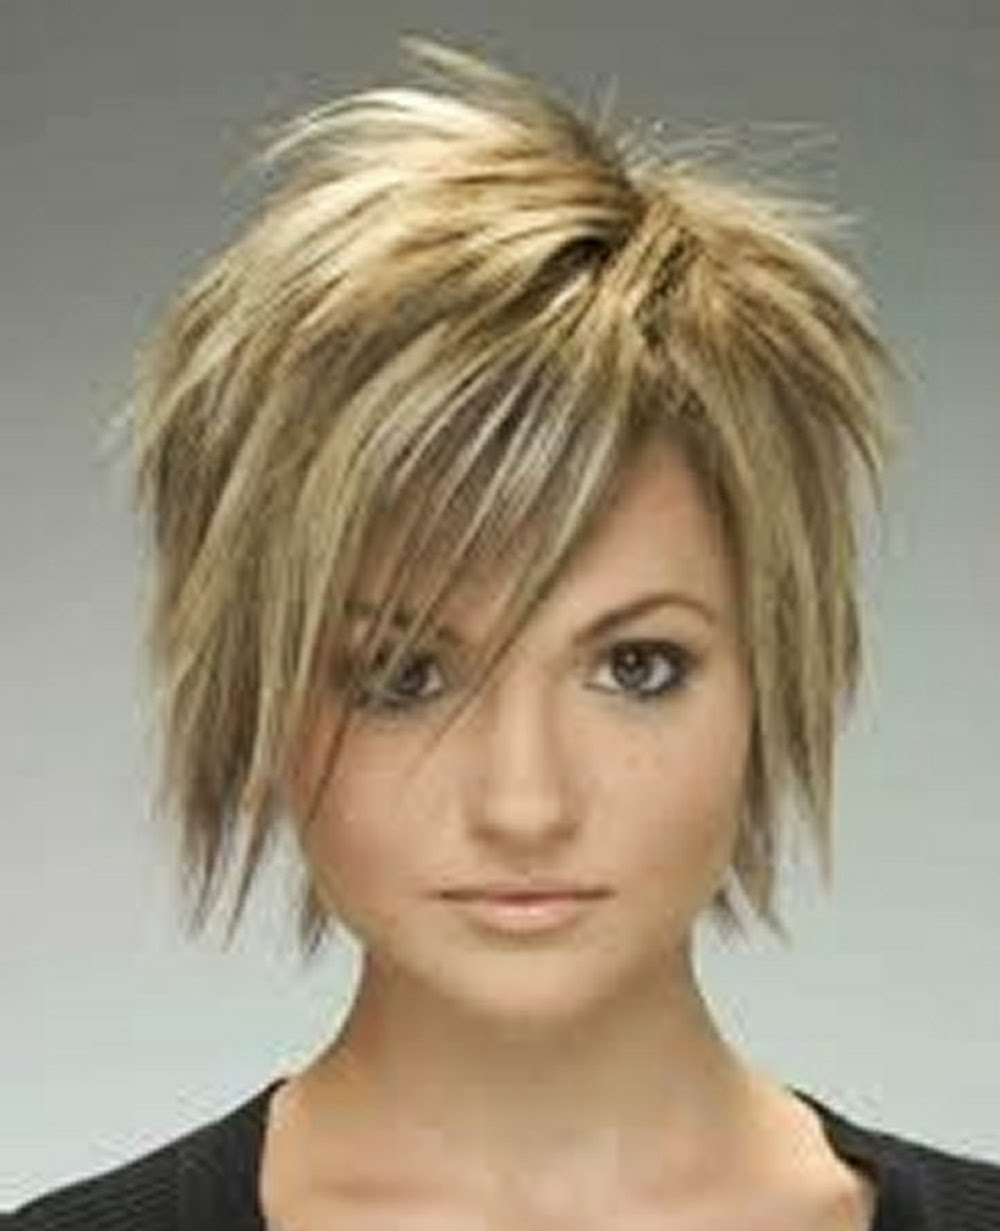 Explore Gallery Of Choppy Pixie Haircuts With Side Bangs Showing 4